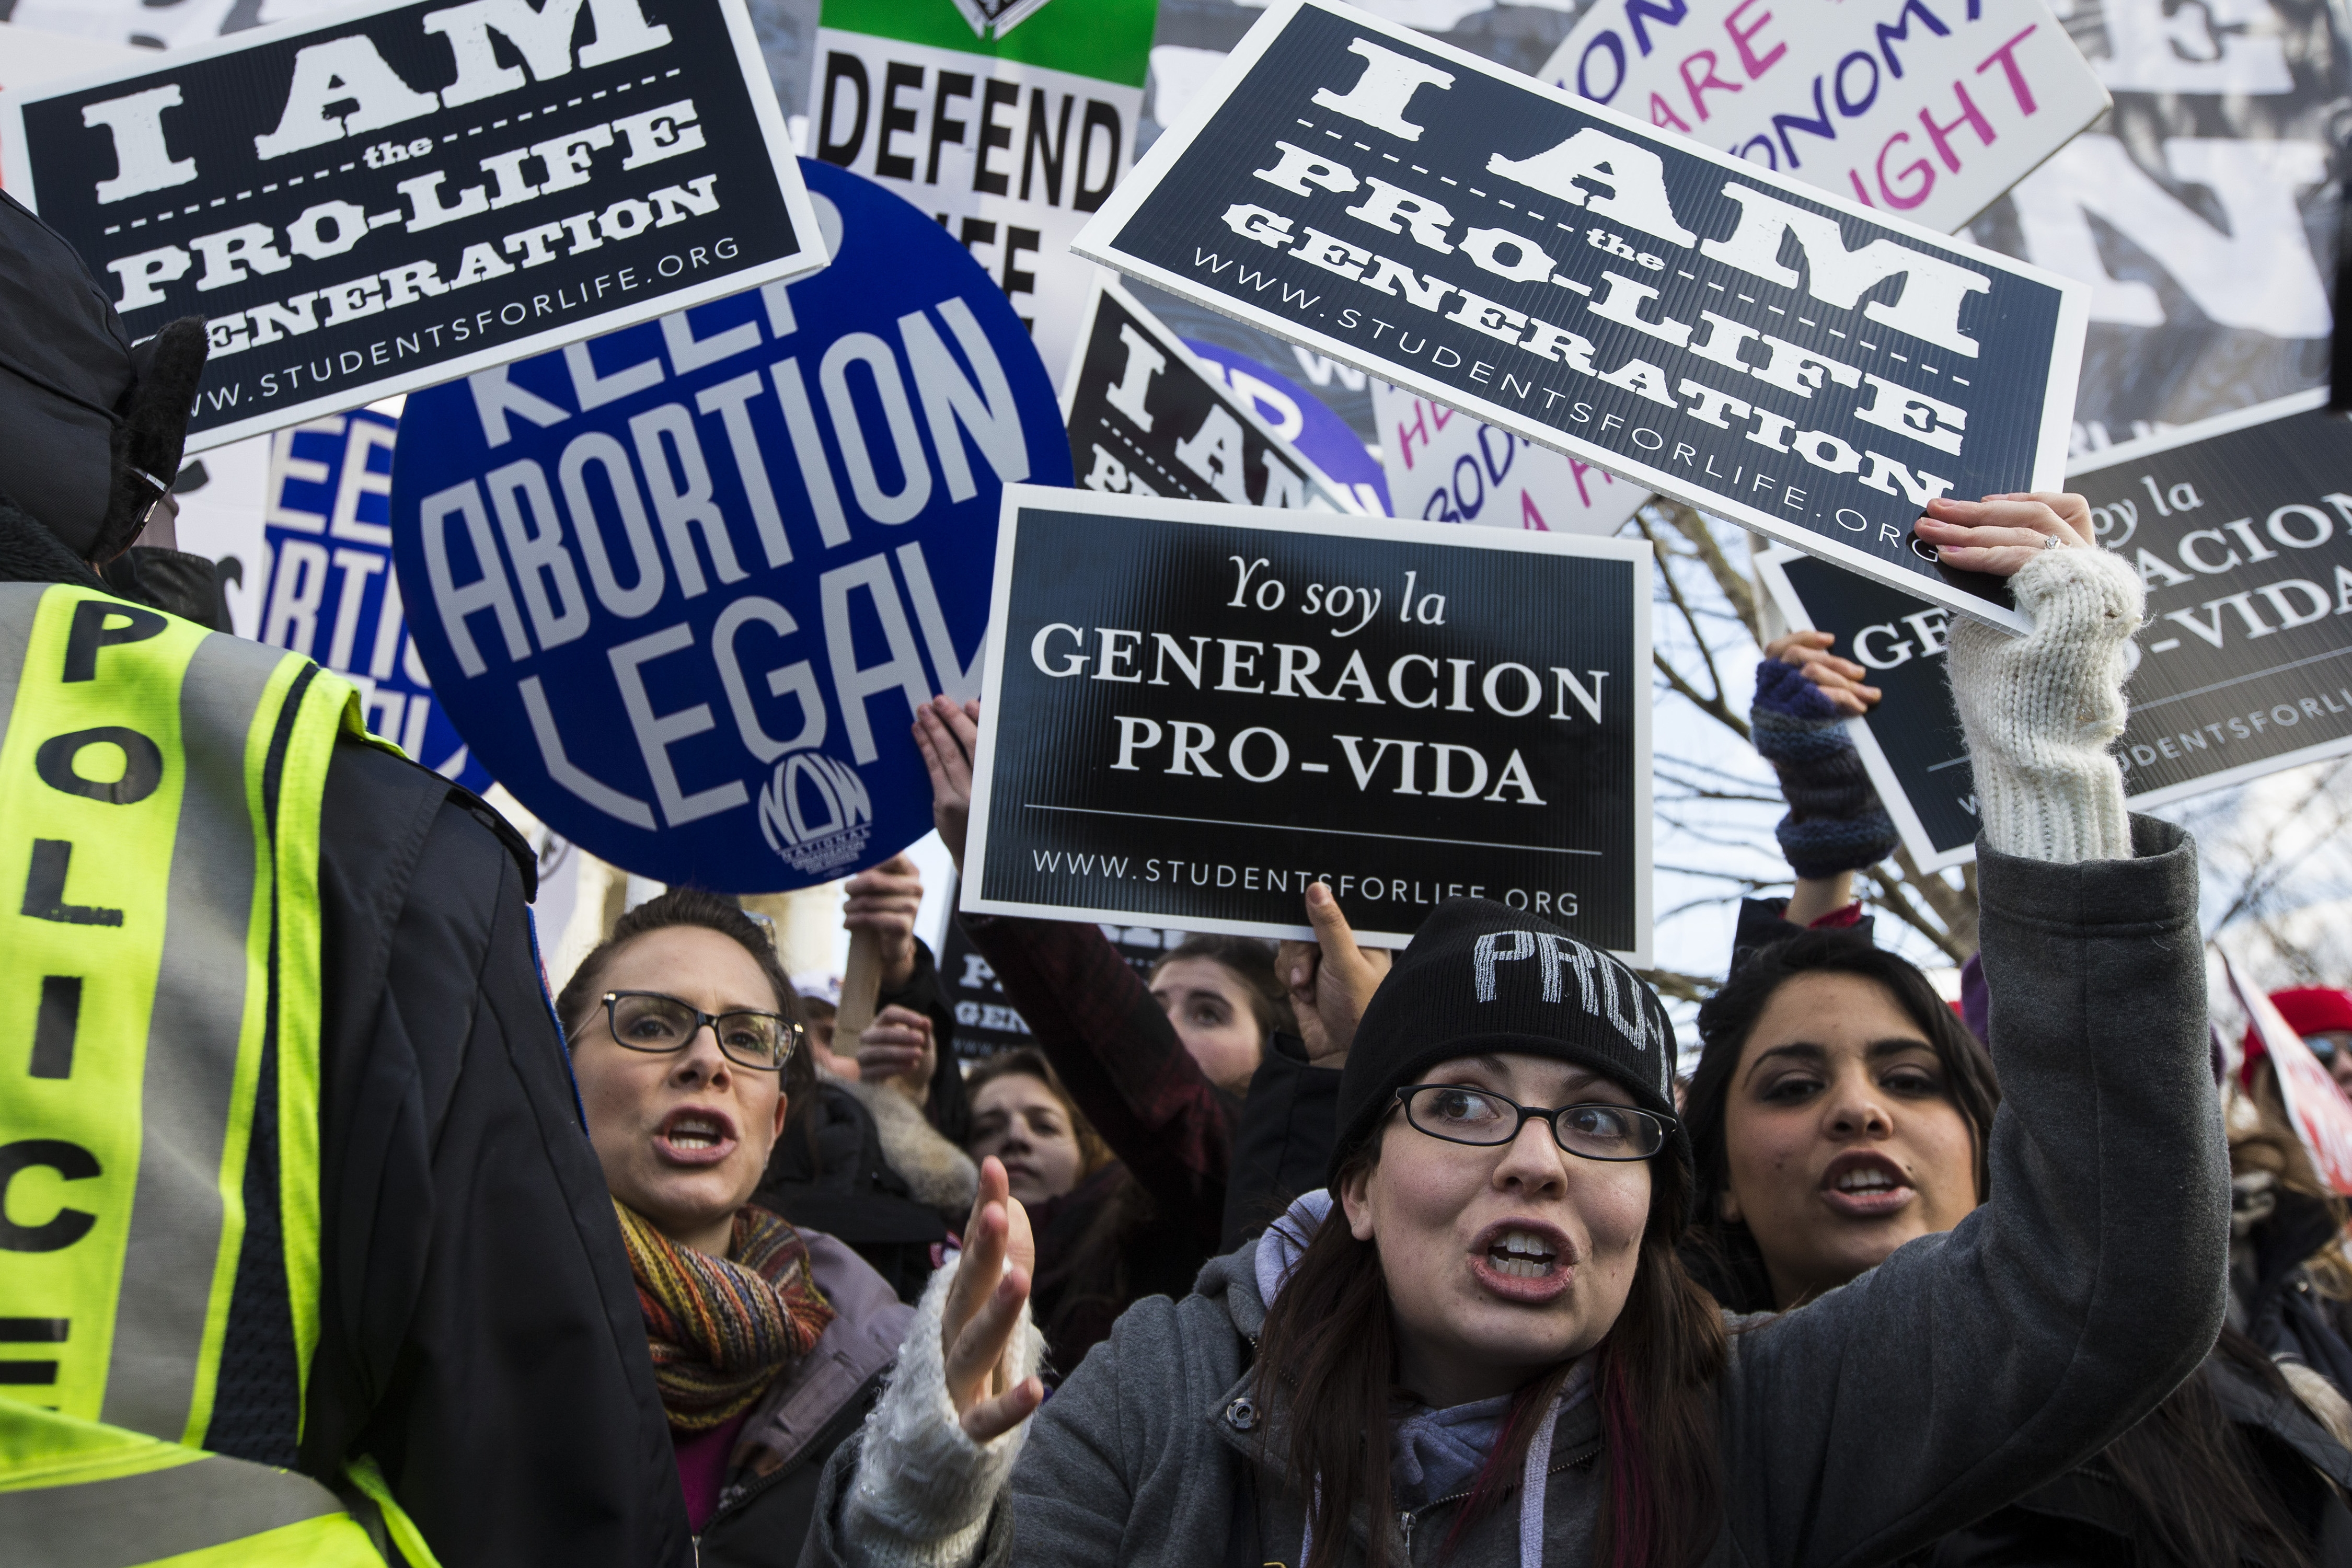 Anti-abortion protesters hold signs in front of the Supreme Court Building during the annual march held on the anniversary of the Roe v. Wade decision in Washington, D.C.